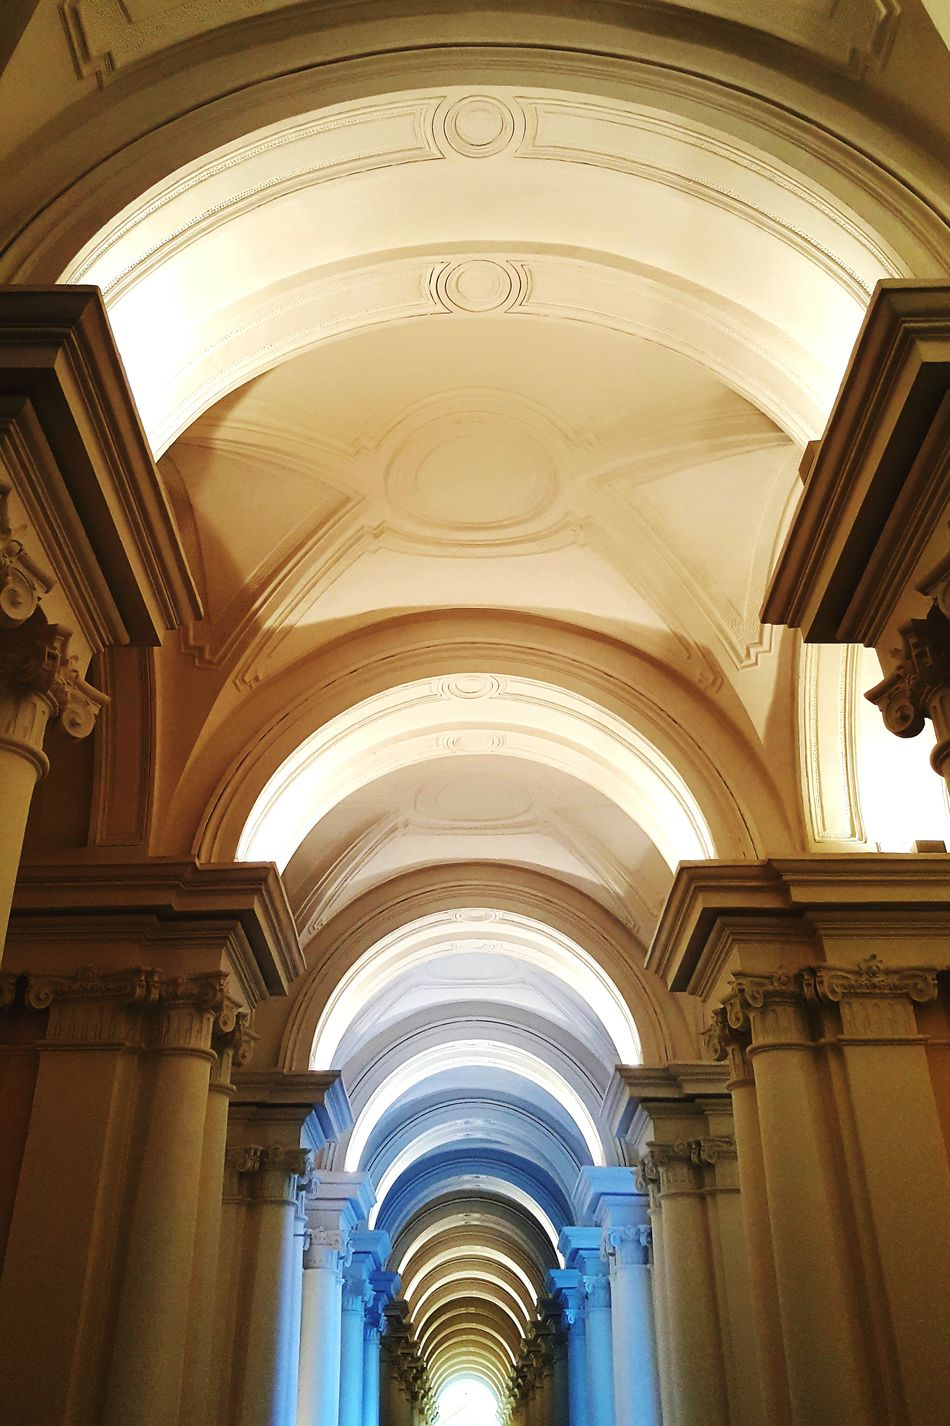 Architecture Arch Ceiling History Low Angle View Architectural Column Built Structure Indoors  Architectural Feature Museum Travel Destinations No People Illuminated Hermitage, St. Petersburg Palace St. Petersburg St. Petersburg, Russia Imperial Palace Russia Architecture Hermitage Museum Winter Palace Entrance